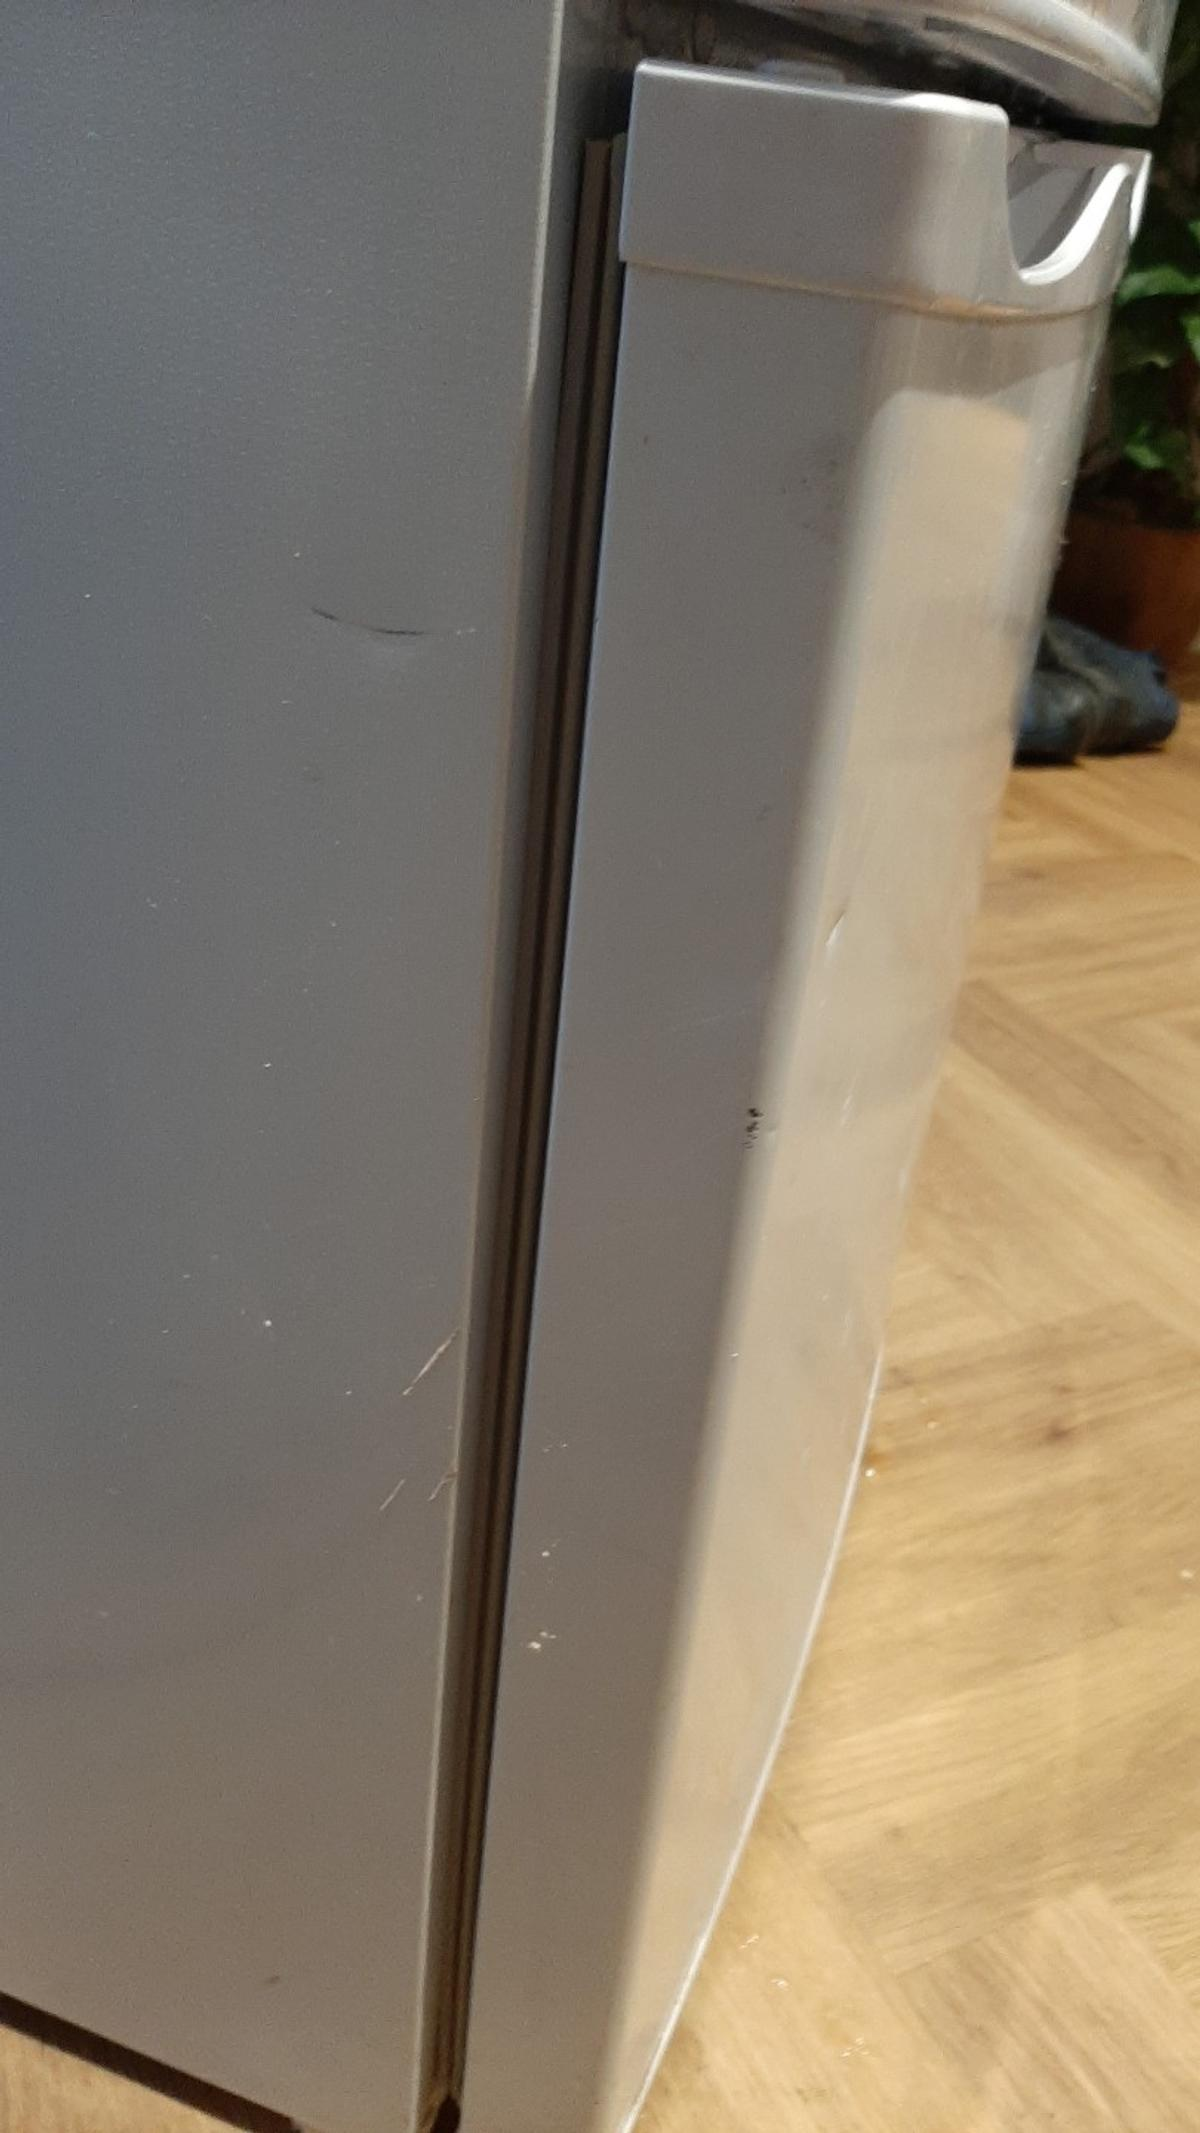 fridge freezer, 3 shelves and veg compartment, 3 freezer draws. 141 cm height by 49cm wide. few dents in bottom front door. bottom door needs to be closed firmly but it does seal if done so.